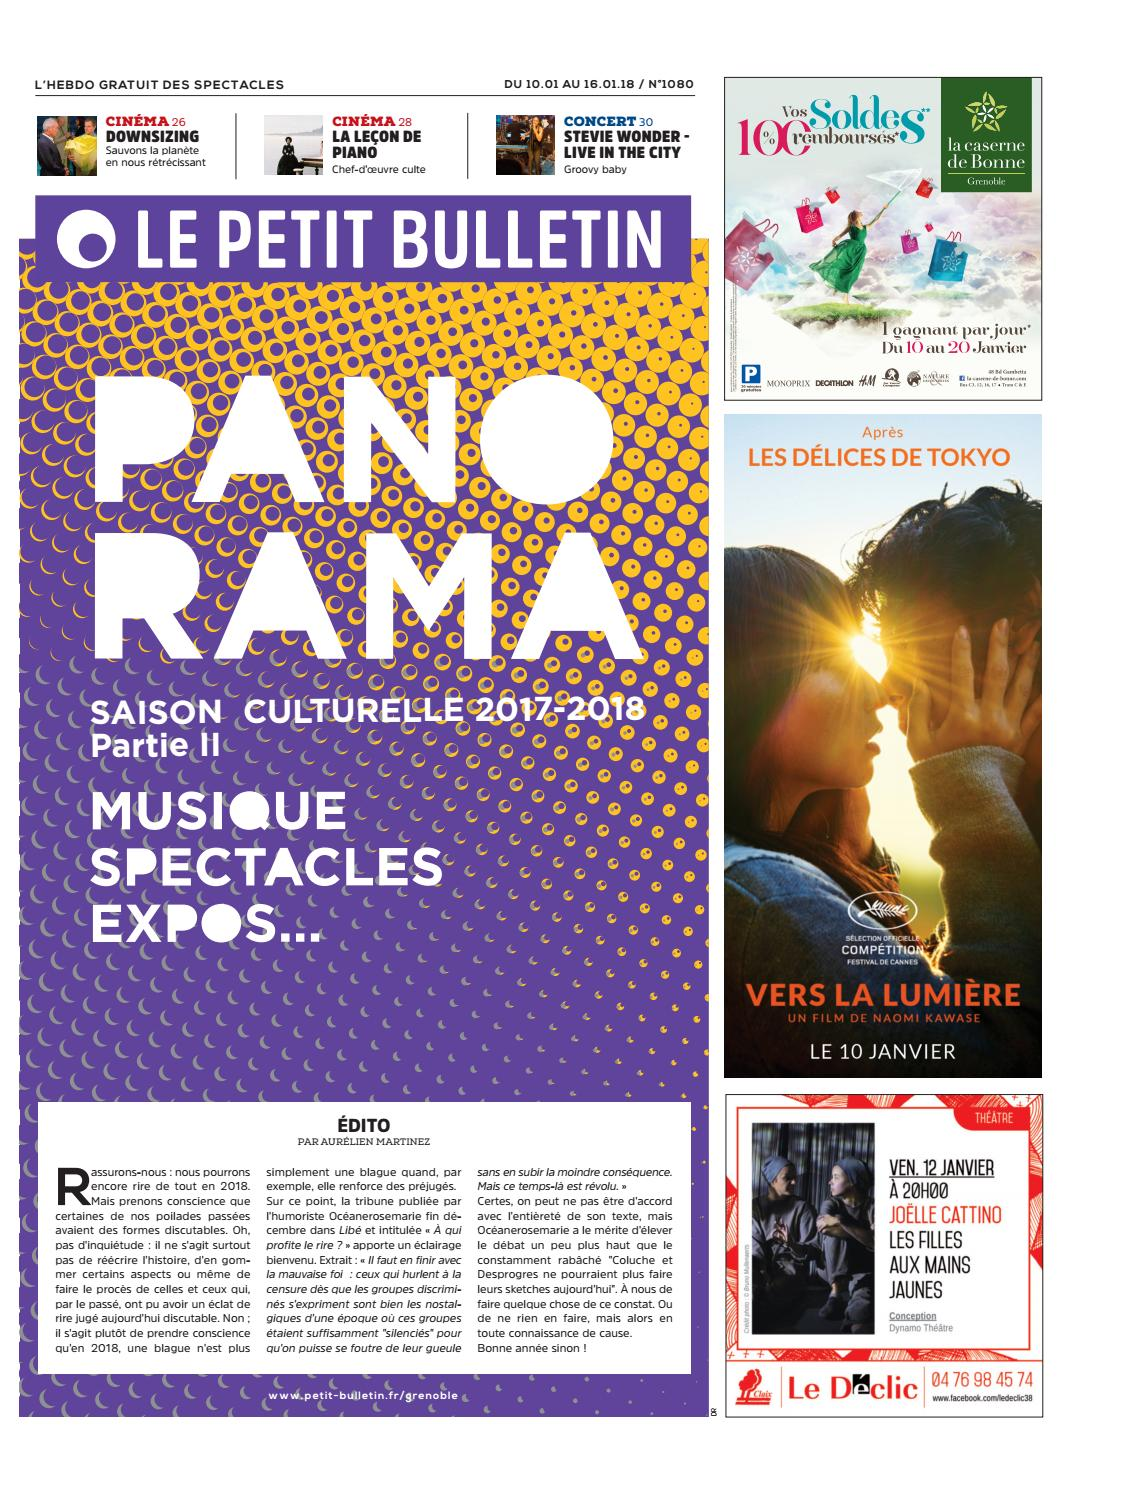 Le Petit Bulletin Grenoble 1080 By Le Petit Bulletin